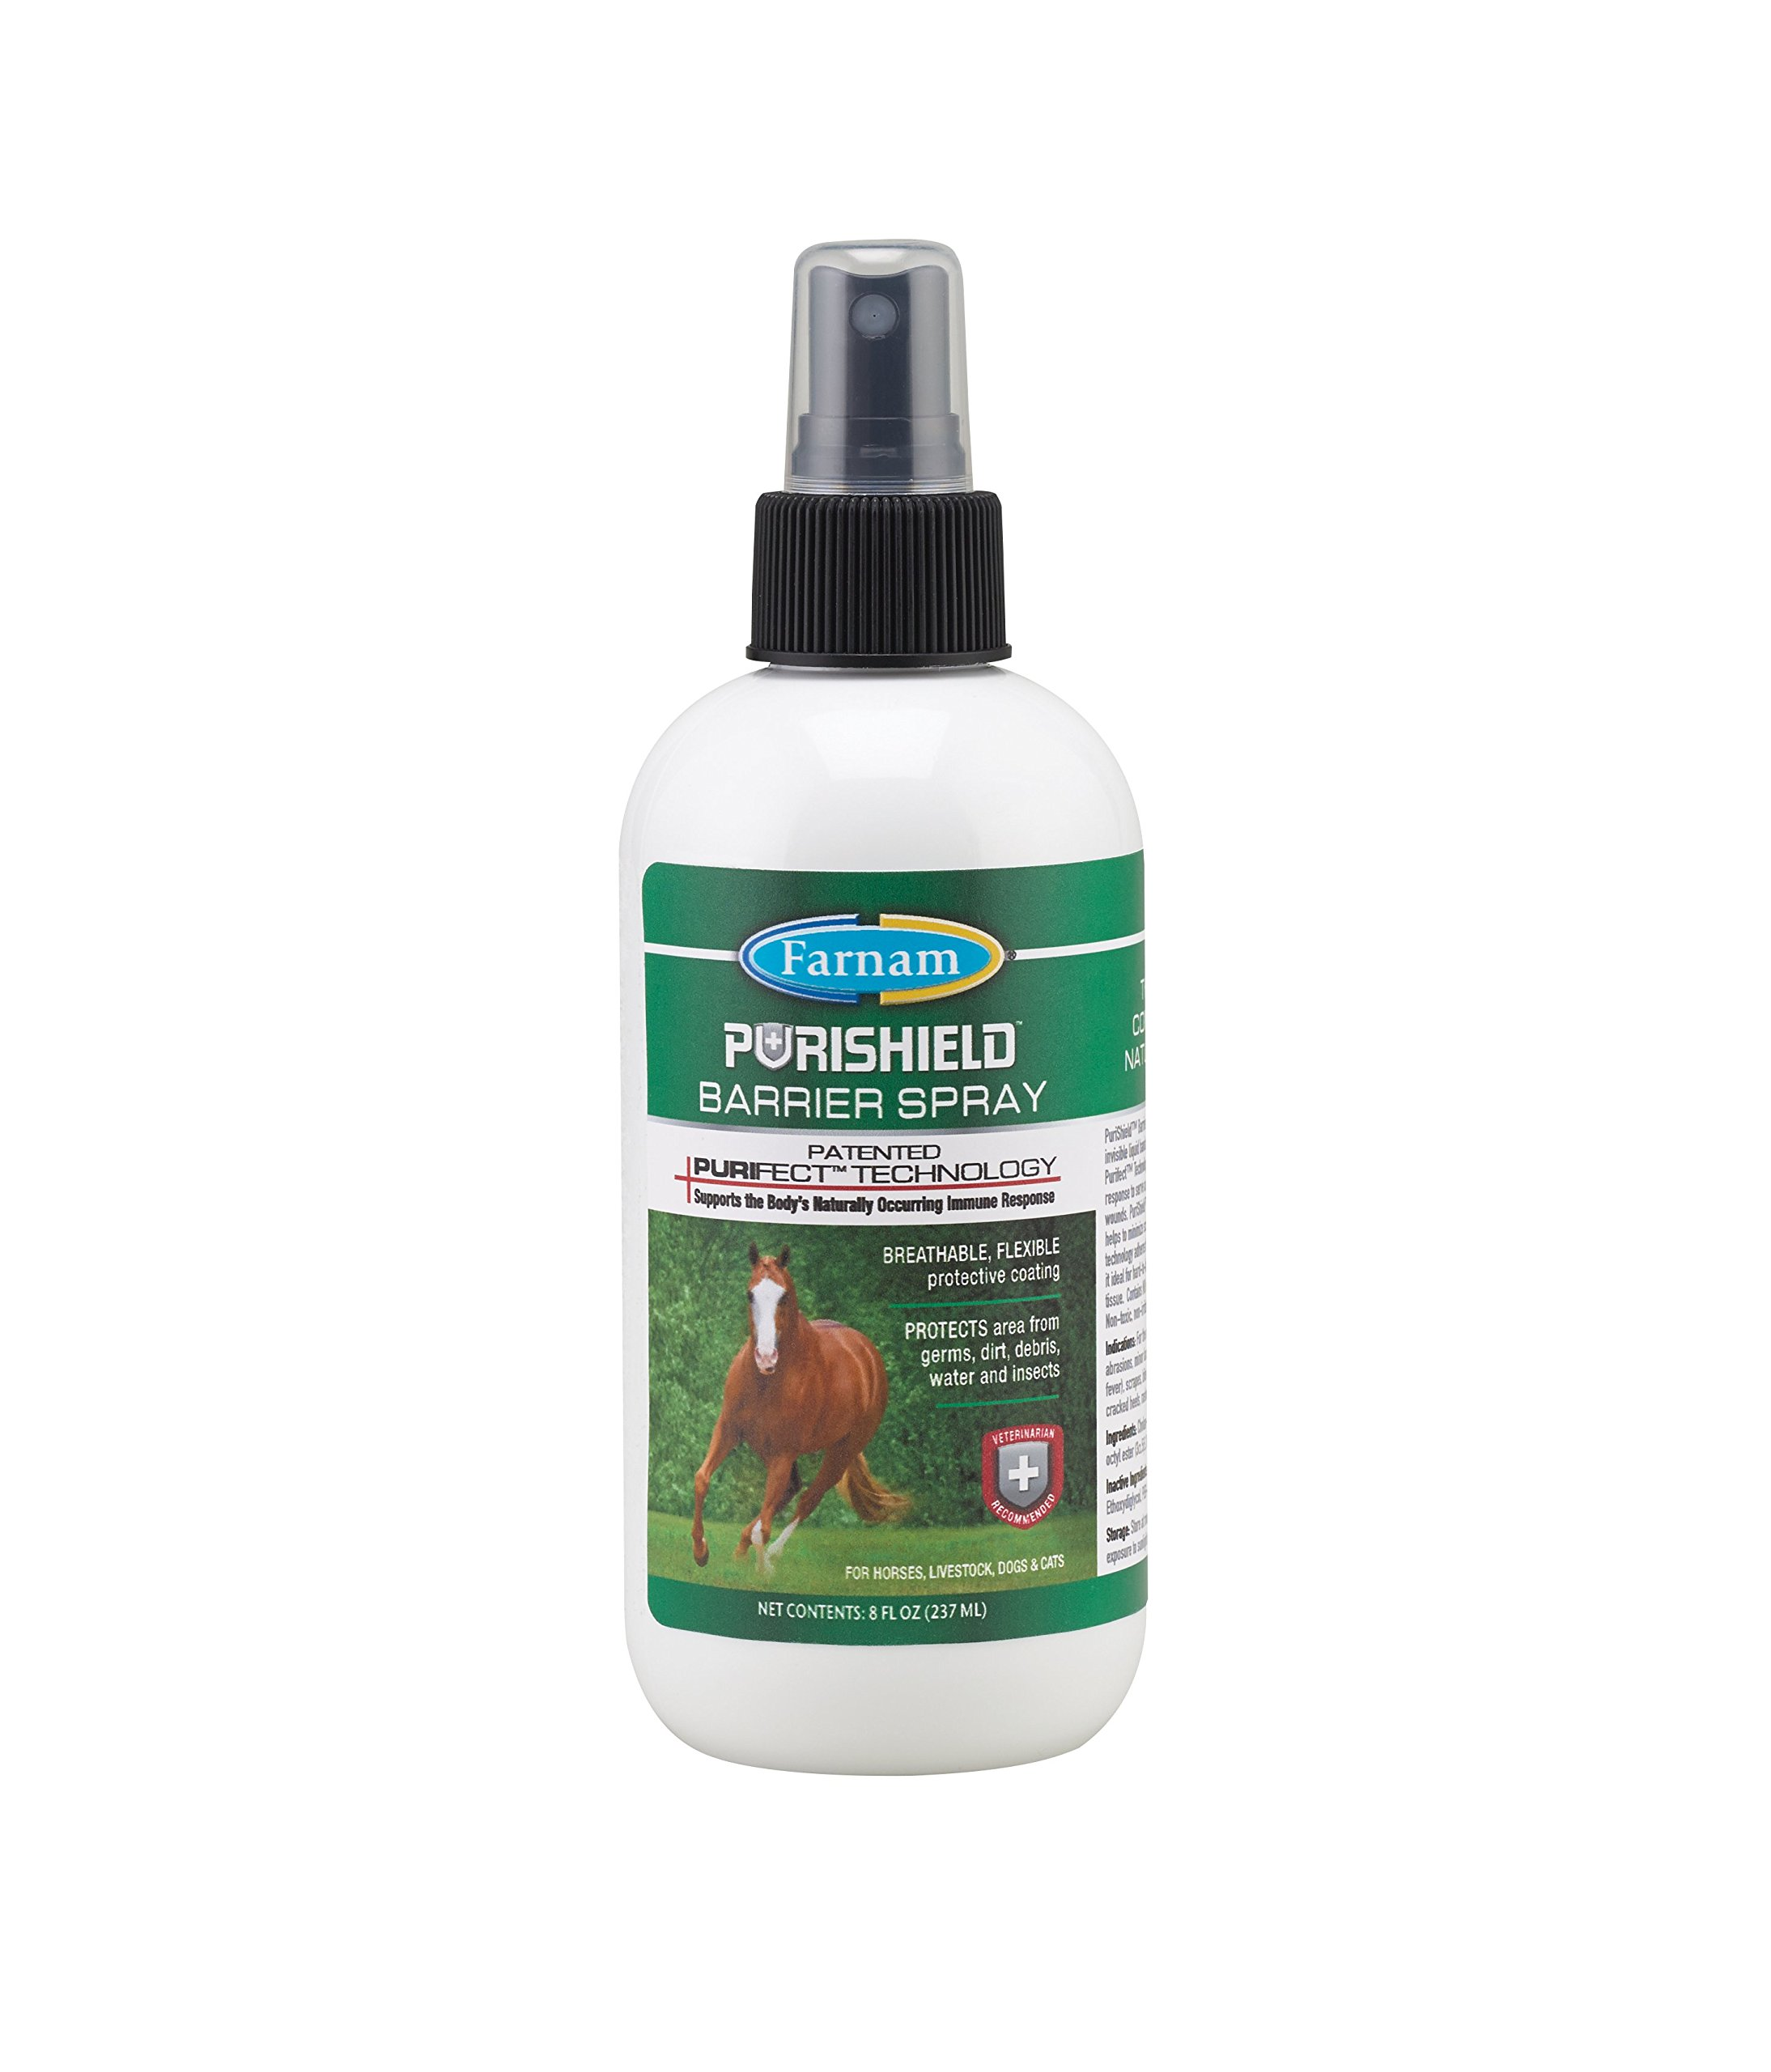 Farnam PuriShield Barrier Spray, 8 fl oz